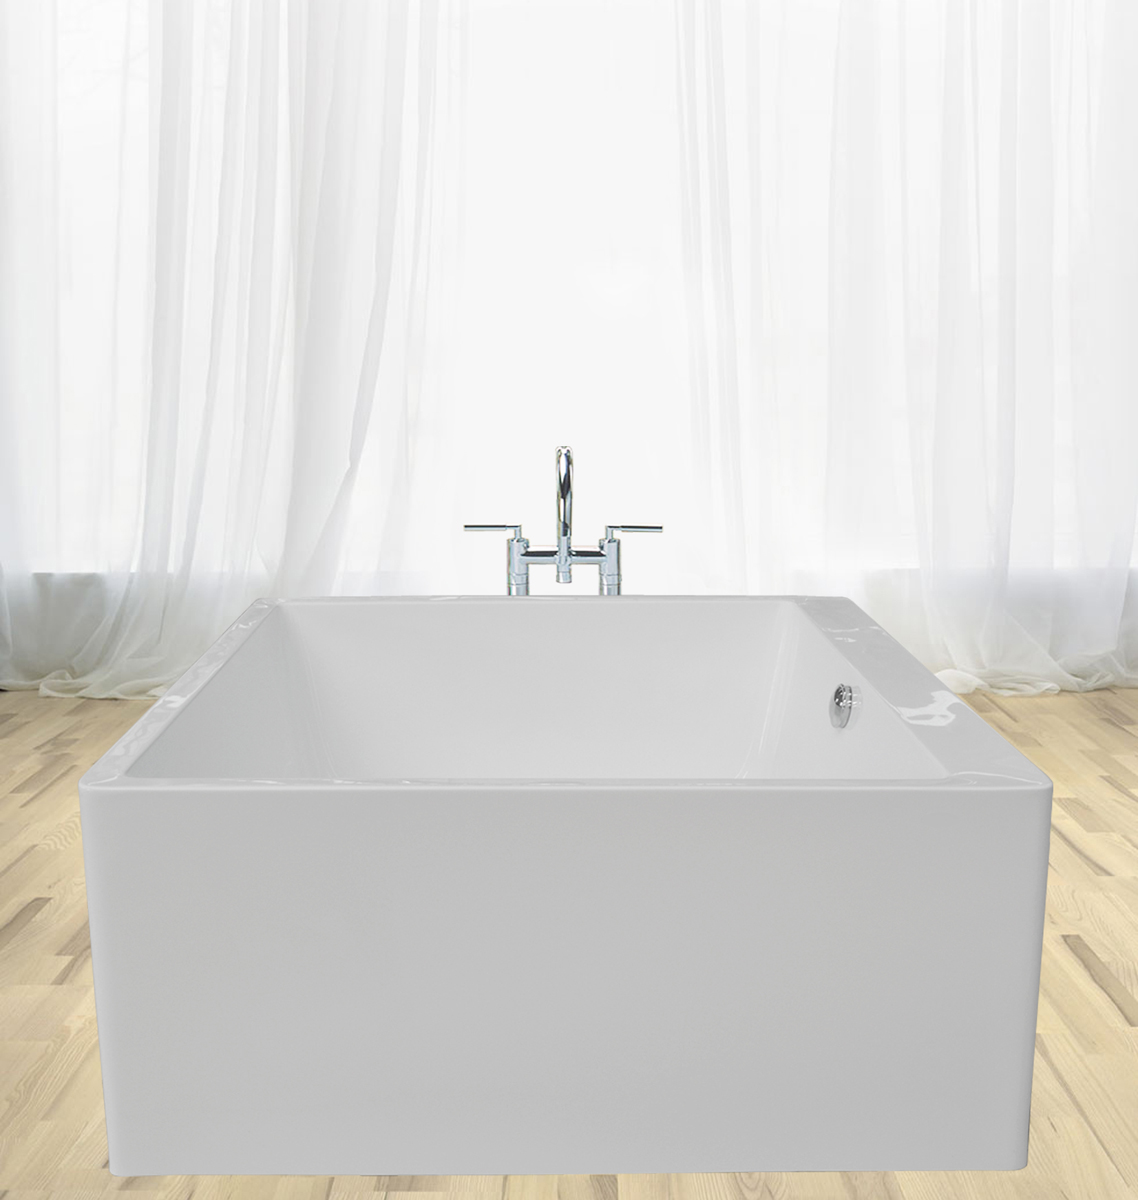 Square Tub Aquatica Purescape™ 324 Freestanding Acrylic Bathtub